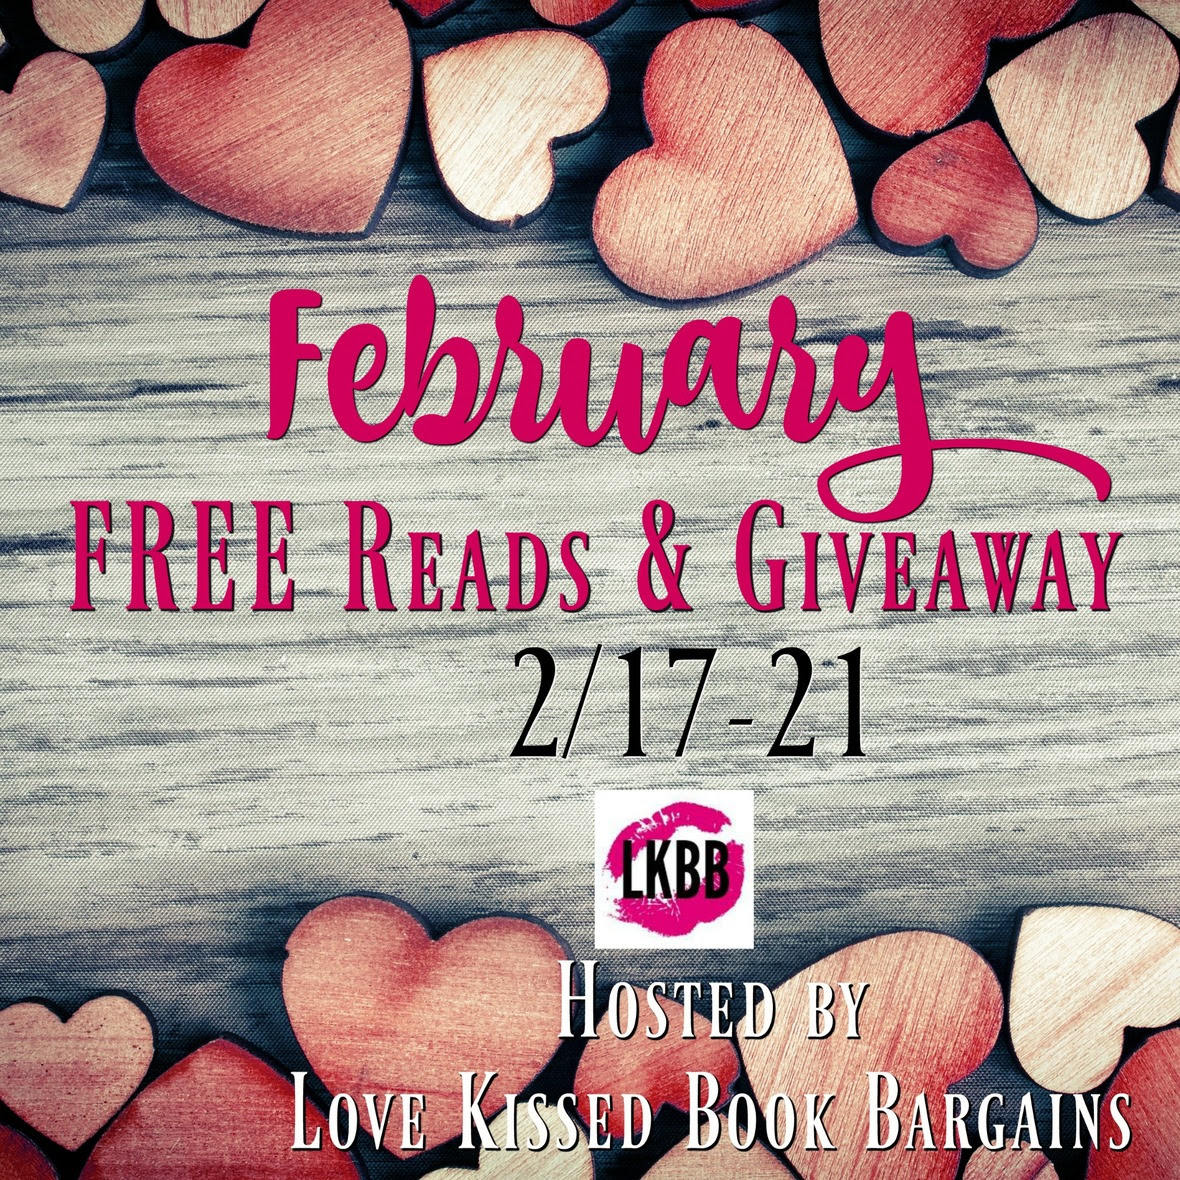 February FREE Reads   Giveaway